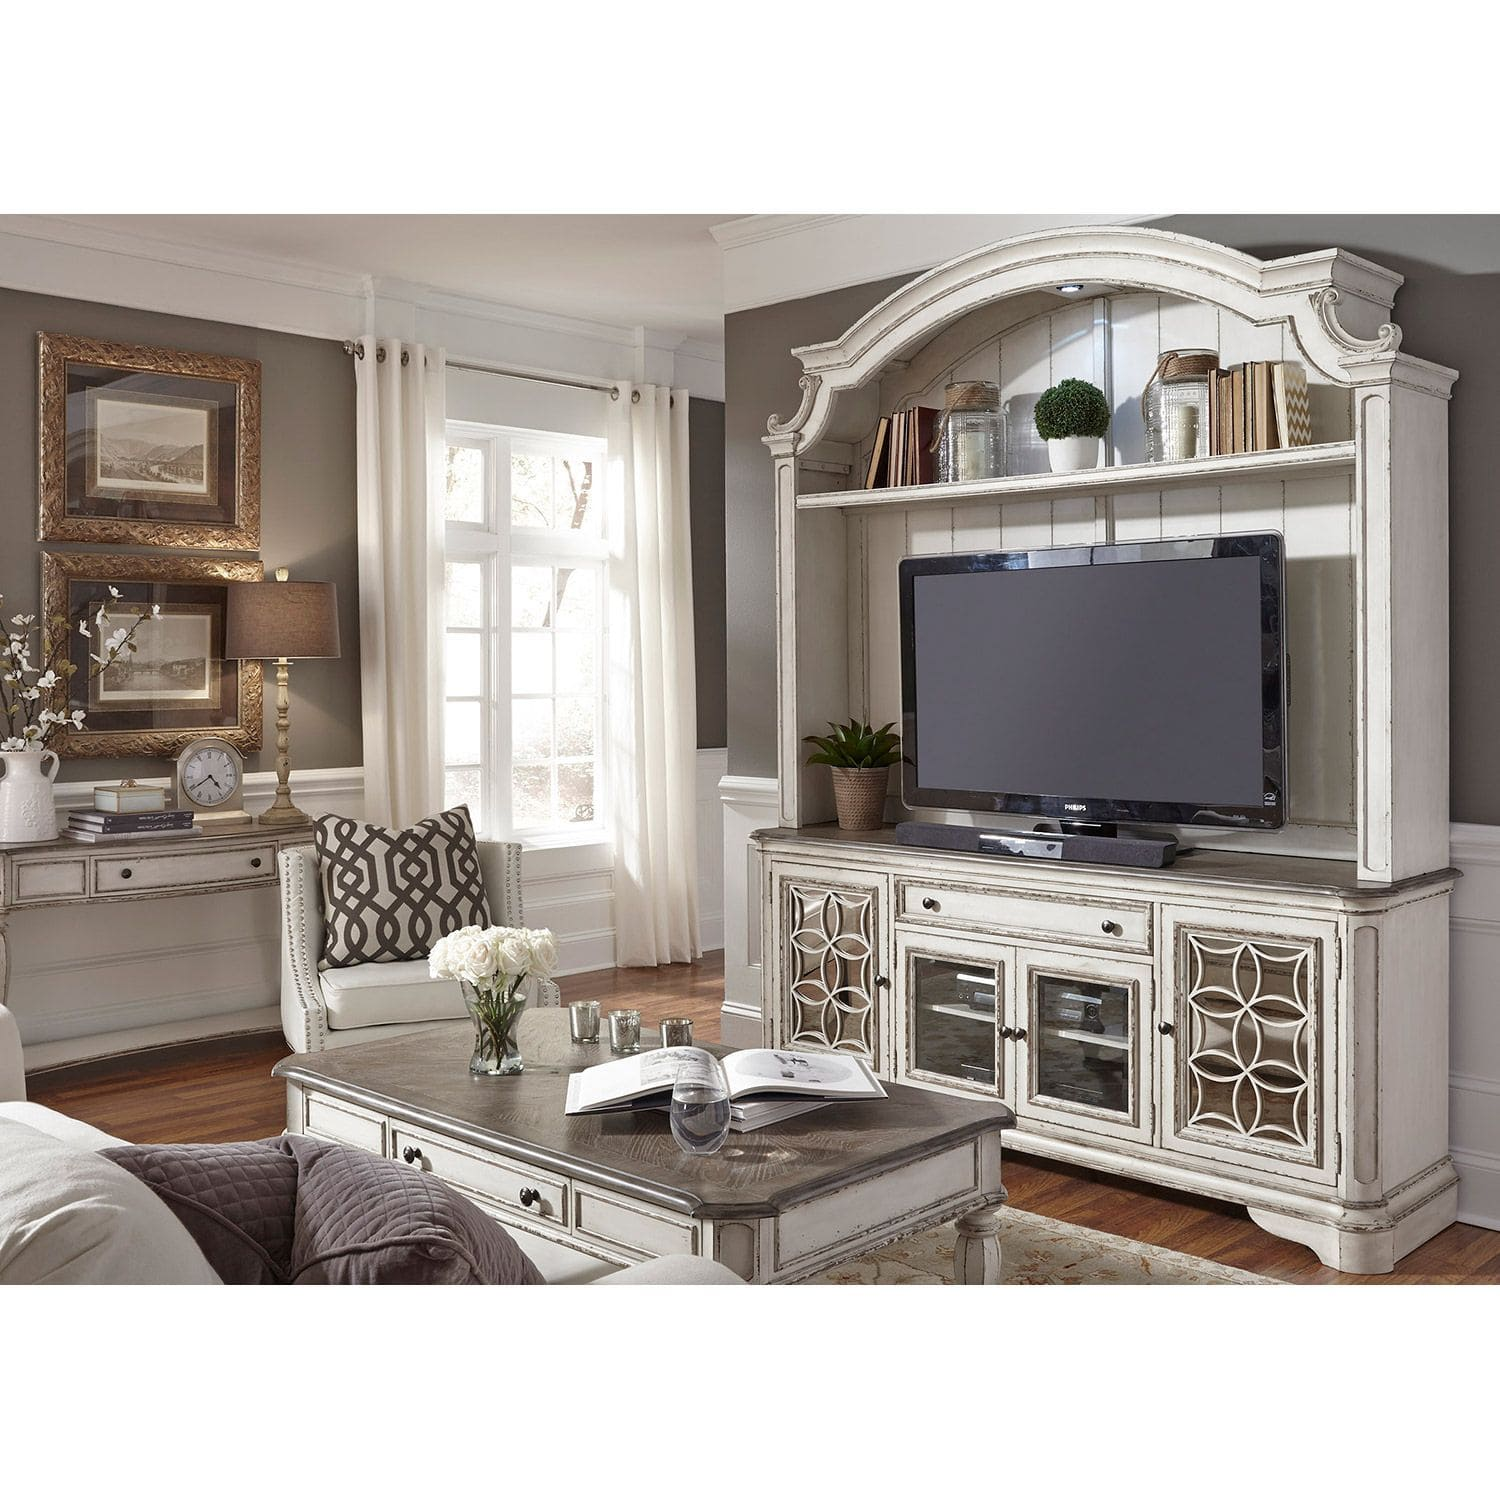 Magnolia Manor TV Stand With Hutch